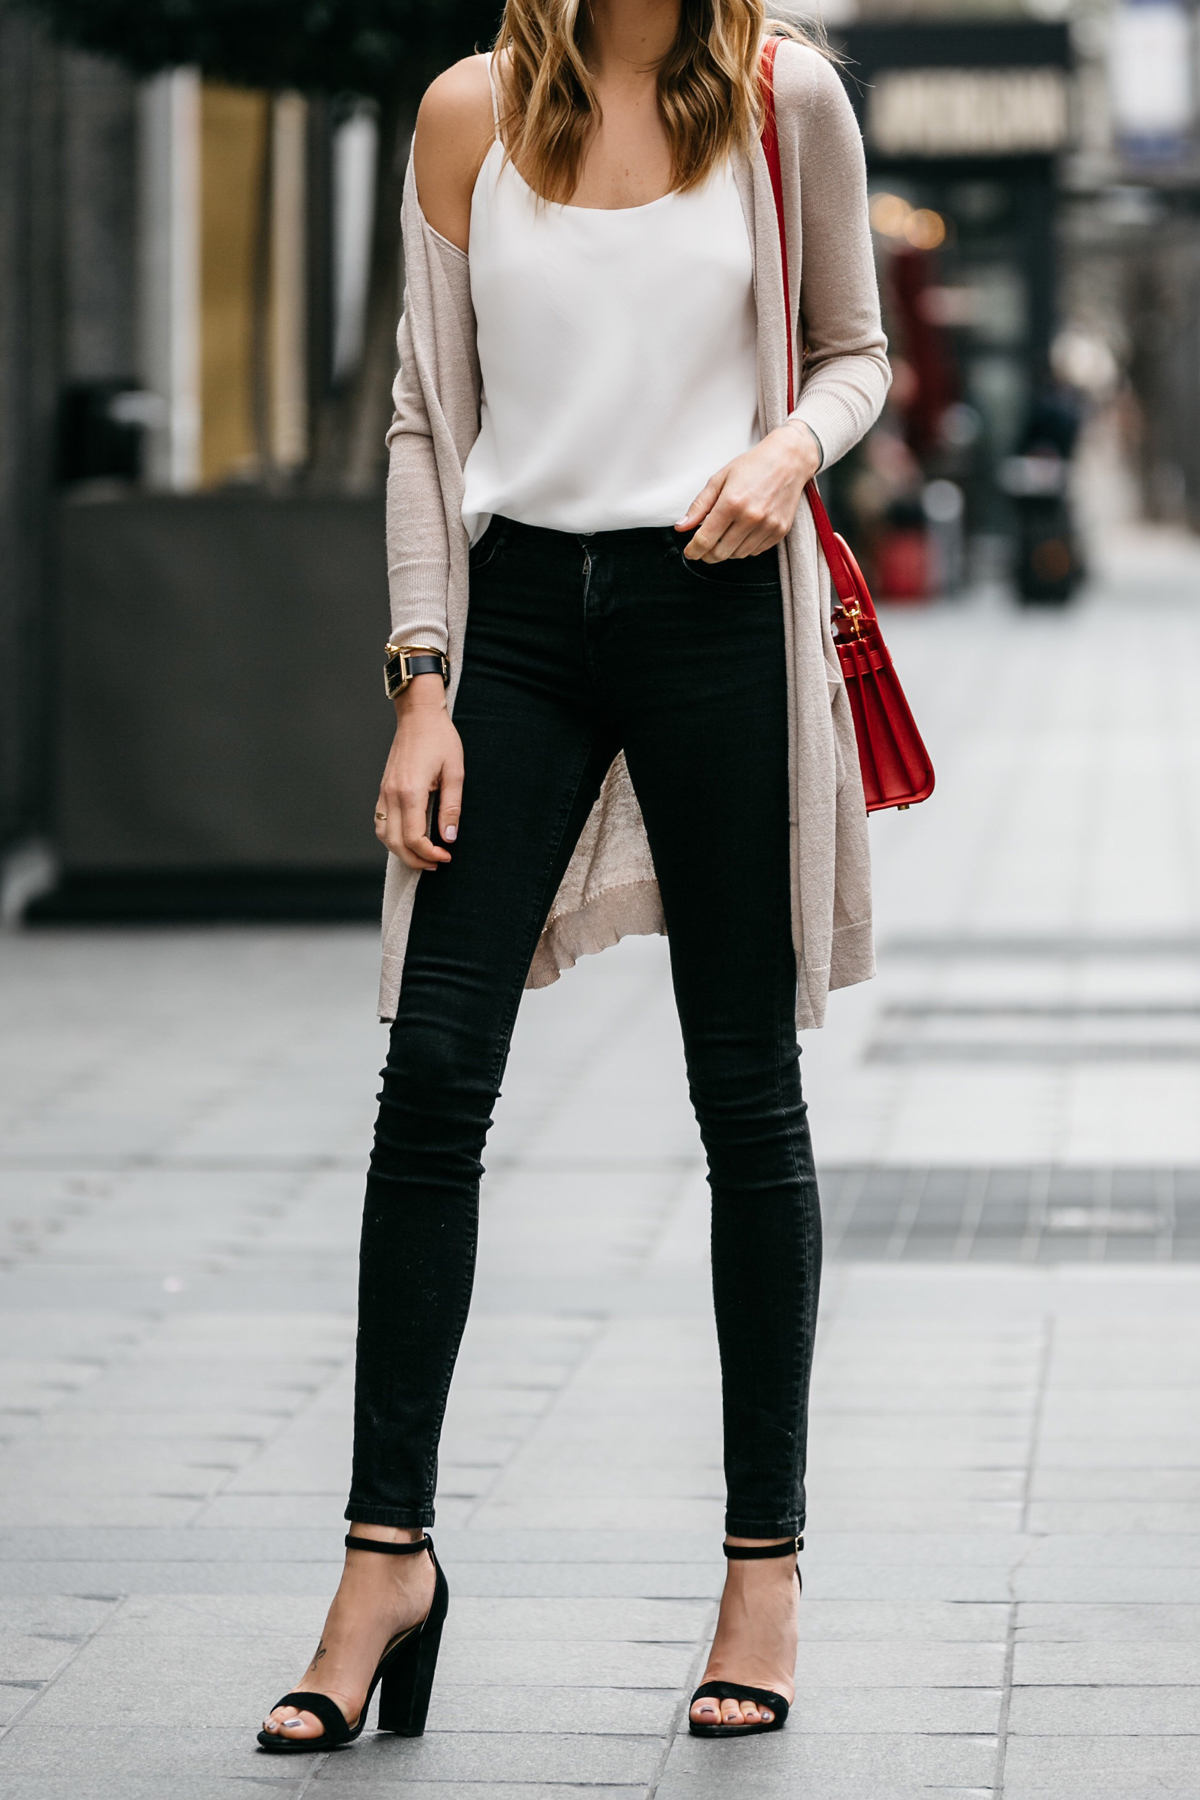 Fashion Jackson, Street Style, Beige Long Cardigan, Club Monaco White Cami, Black Skinny Jeans, Saint Laurent Nano Sac De Jour Red, Steve Madden Carrson Black Ankle Strap Heels